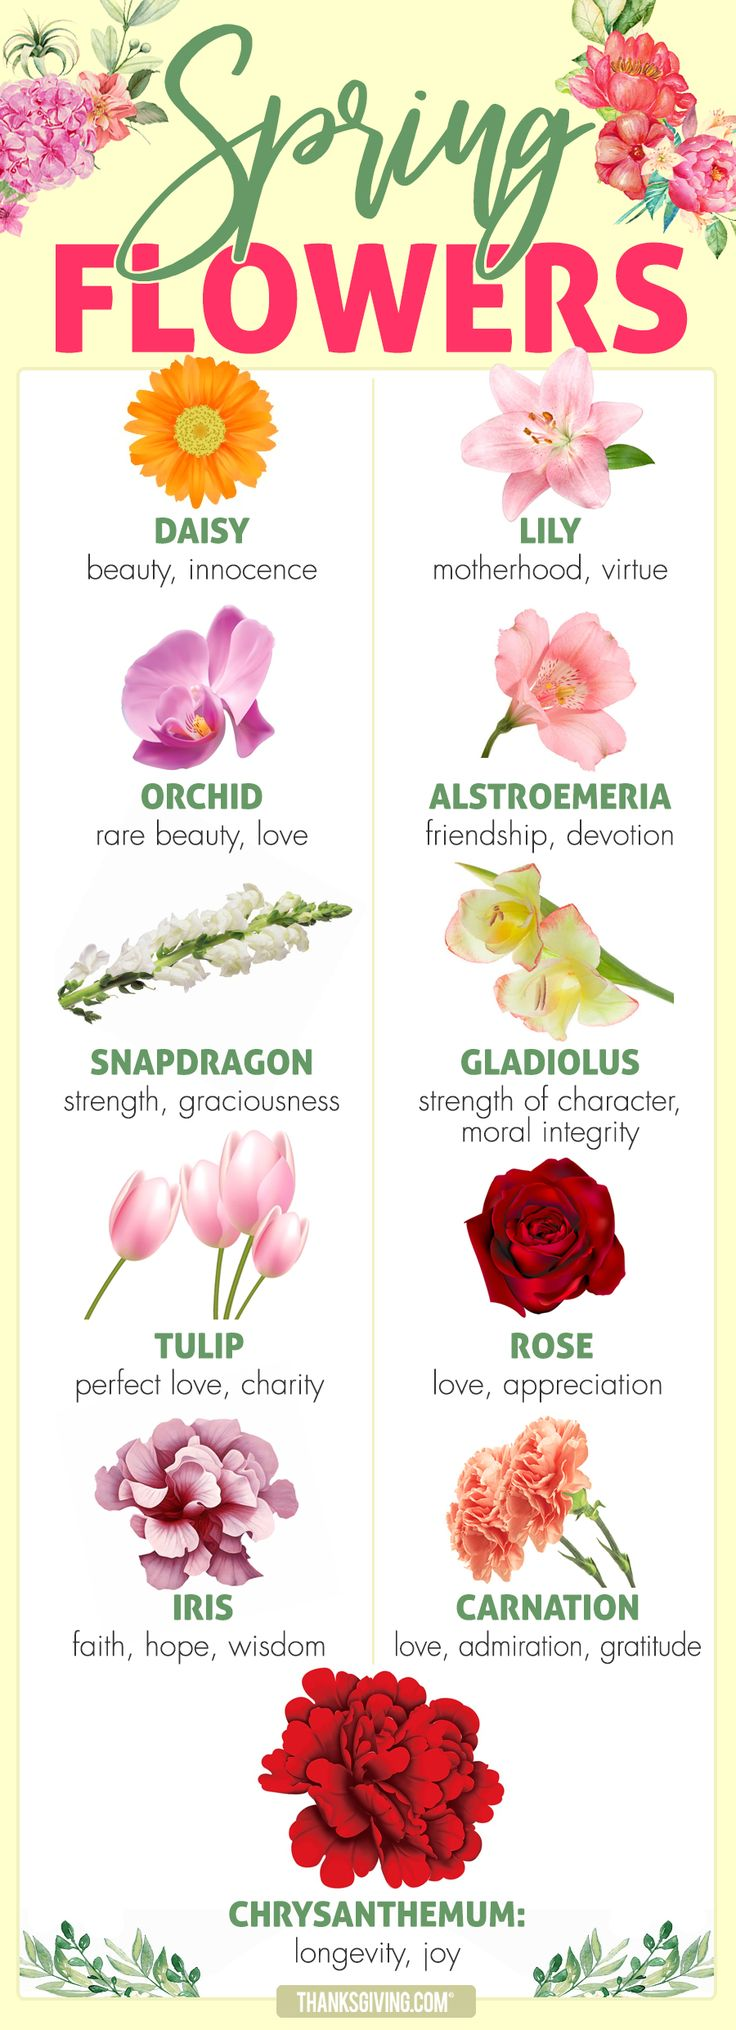 Beauty, love, hope & more Spring flower meanings Fleurs